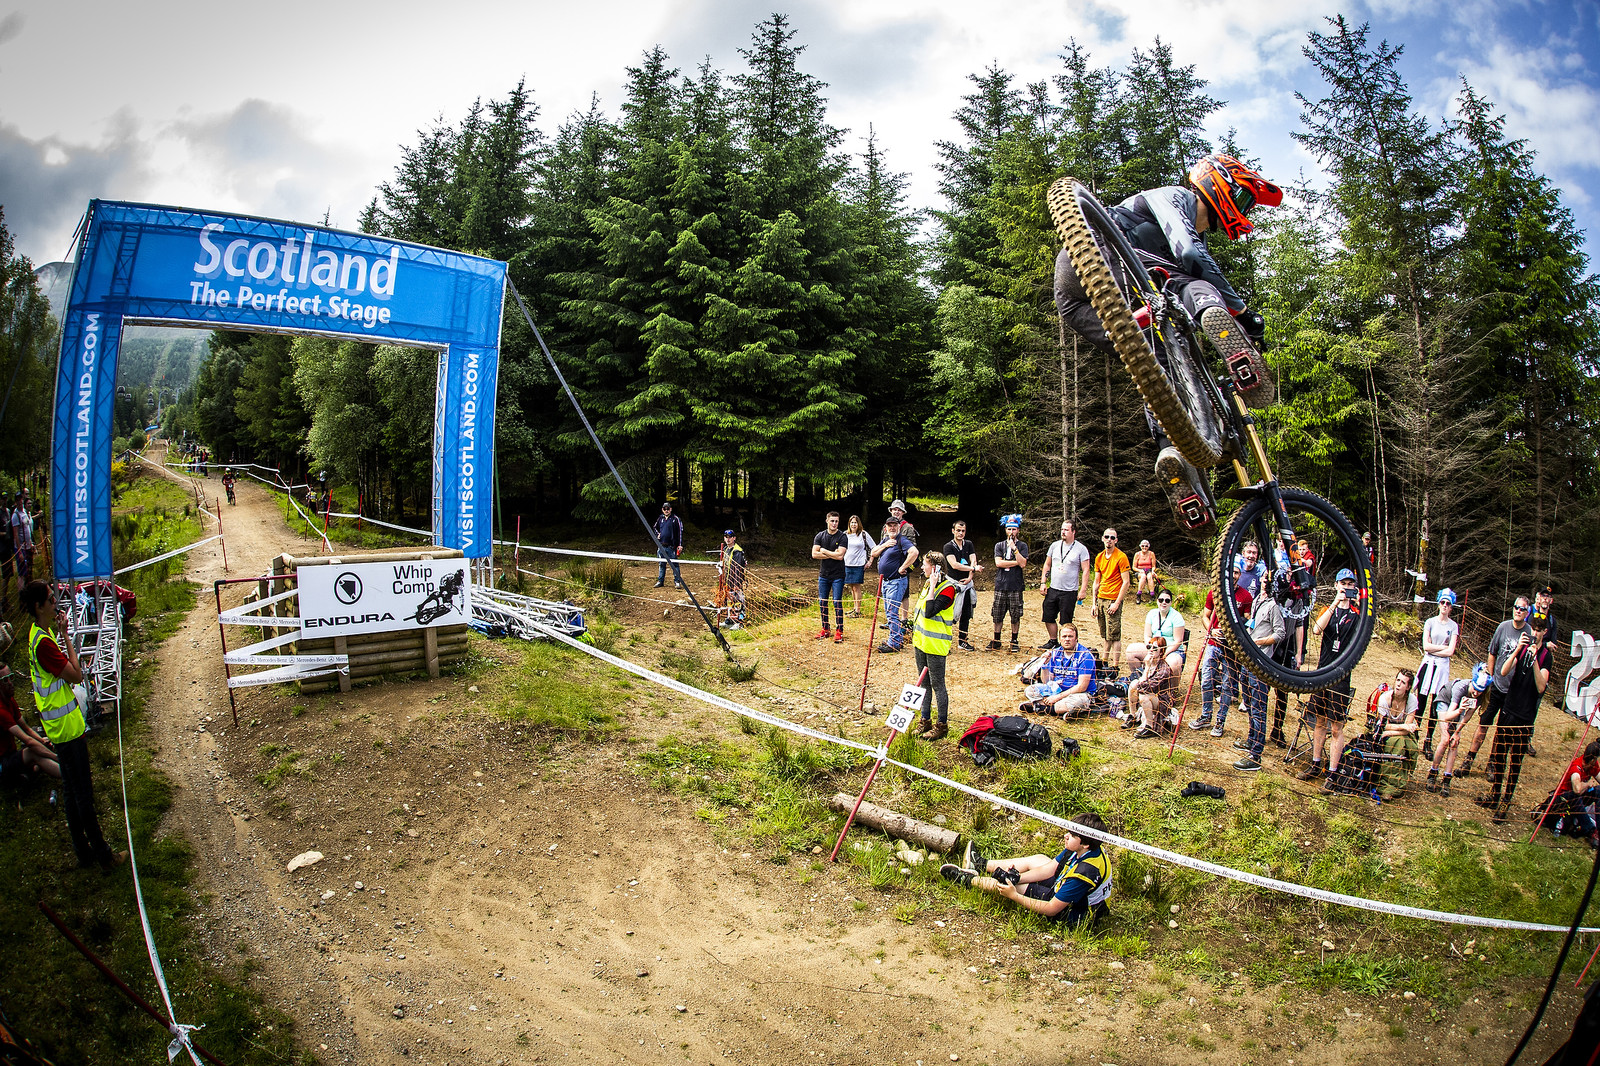 Luca - Fort William World Cup DH Whips - Mountain Biking Pictures - Vital MTB